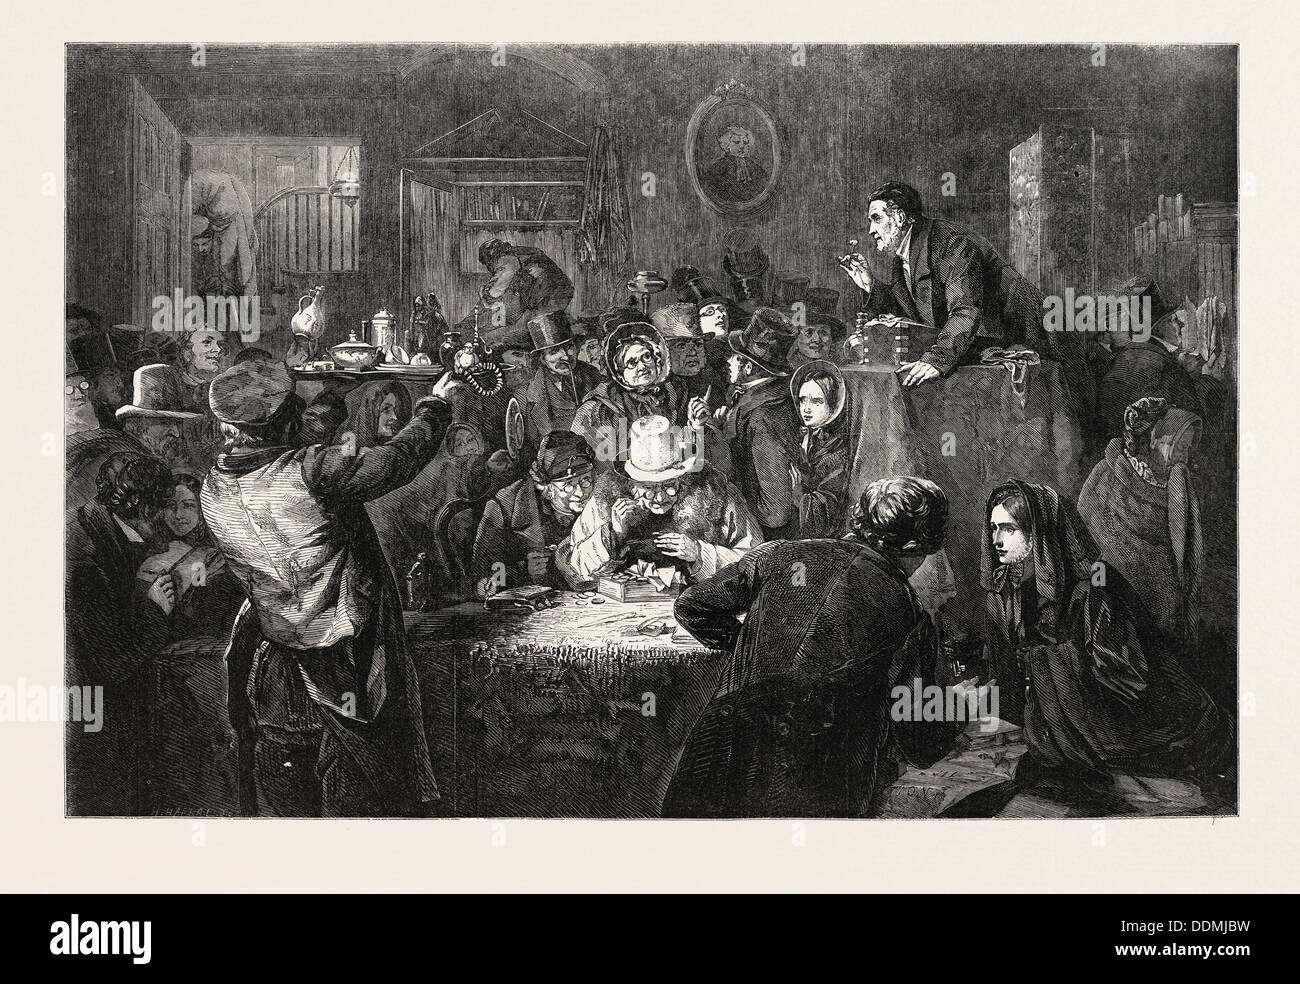 THE LAST DAY OF THE SALE, FROM A PAINTING BY G.B. O'NEILL, IN THE EXHIBITION OF THE ROYAL ACADEMY, UK, 1857 - Stock Image